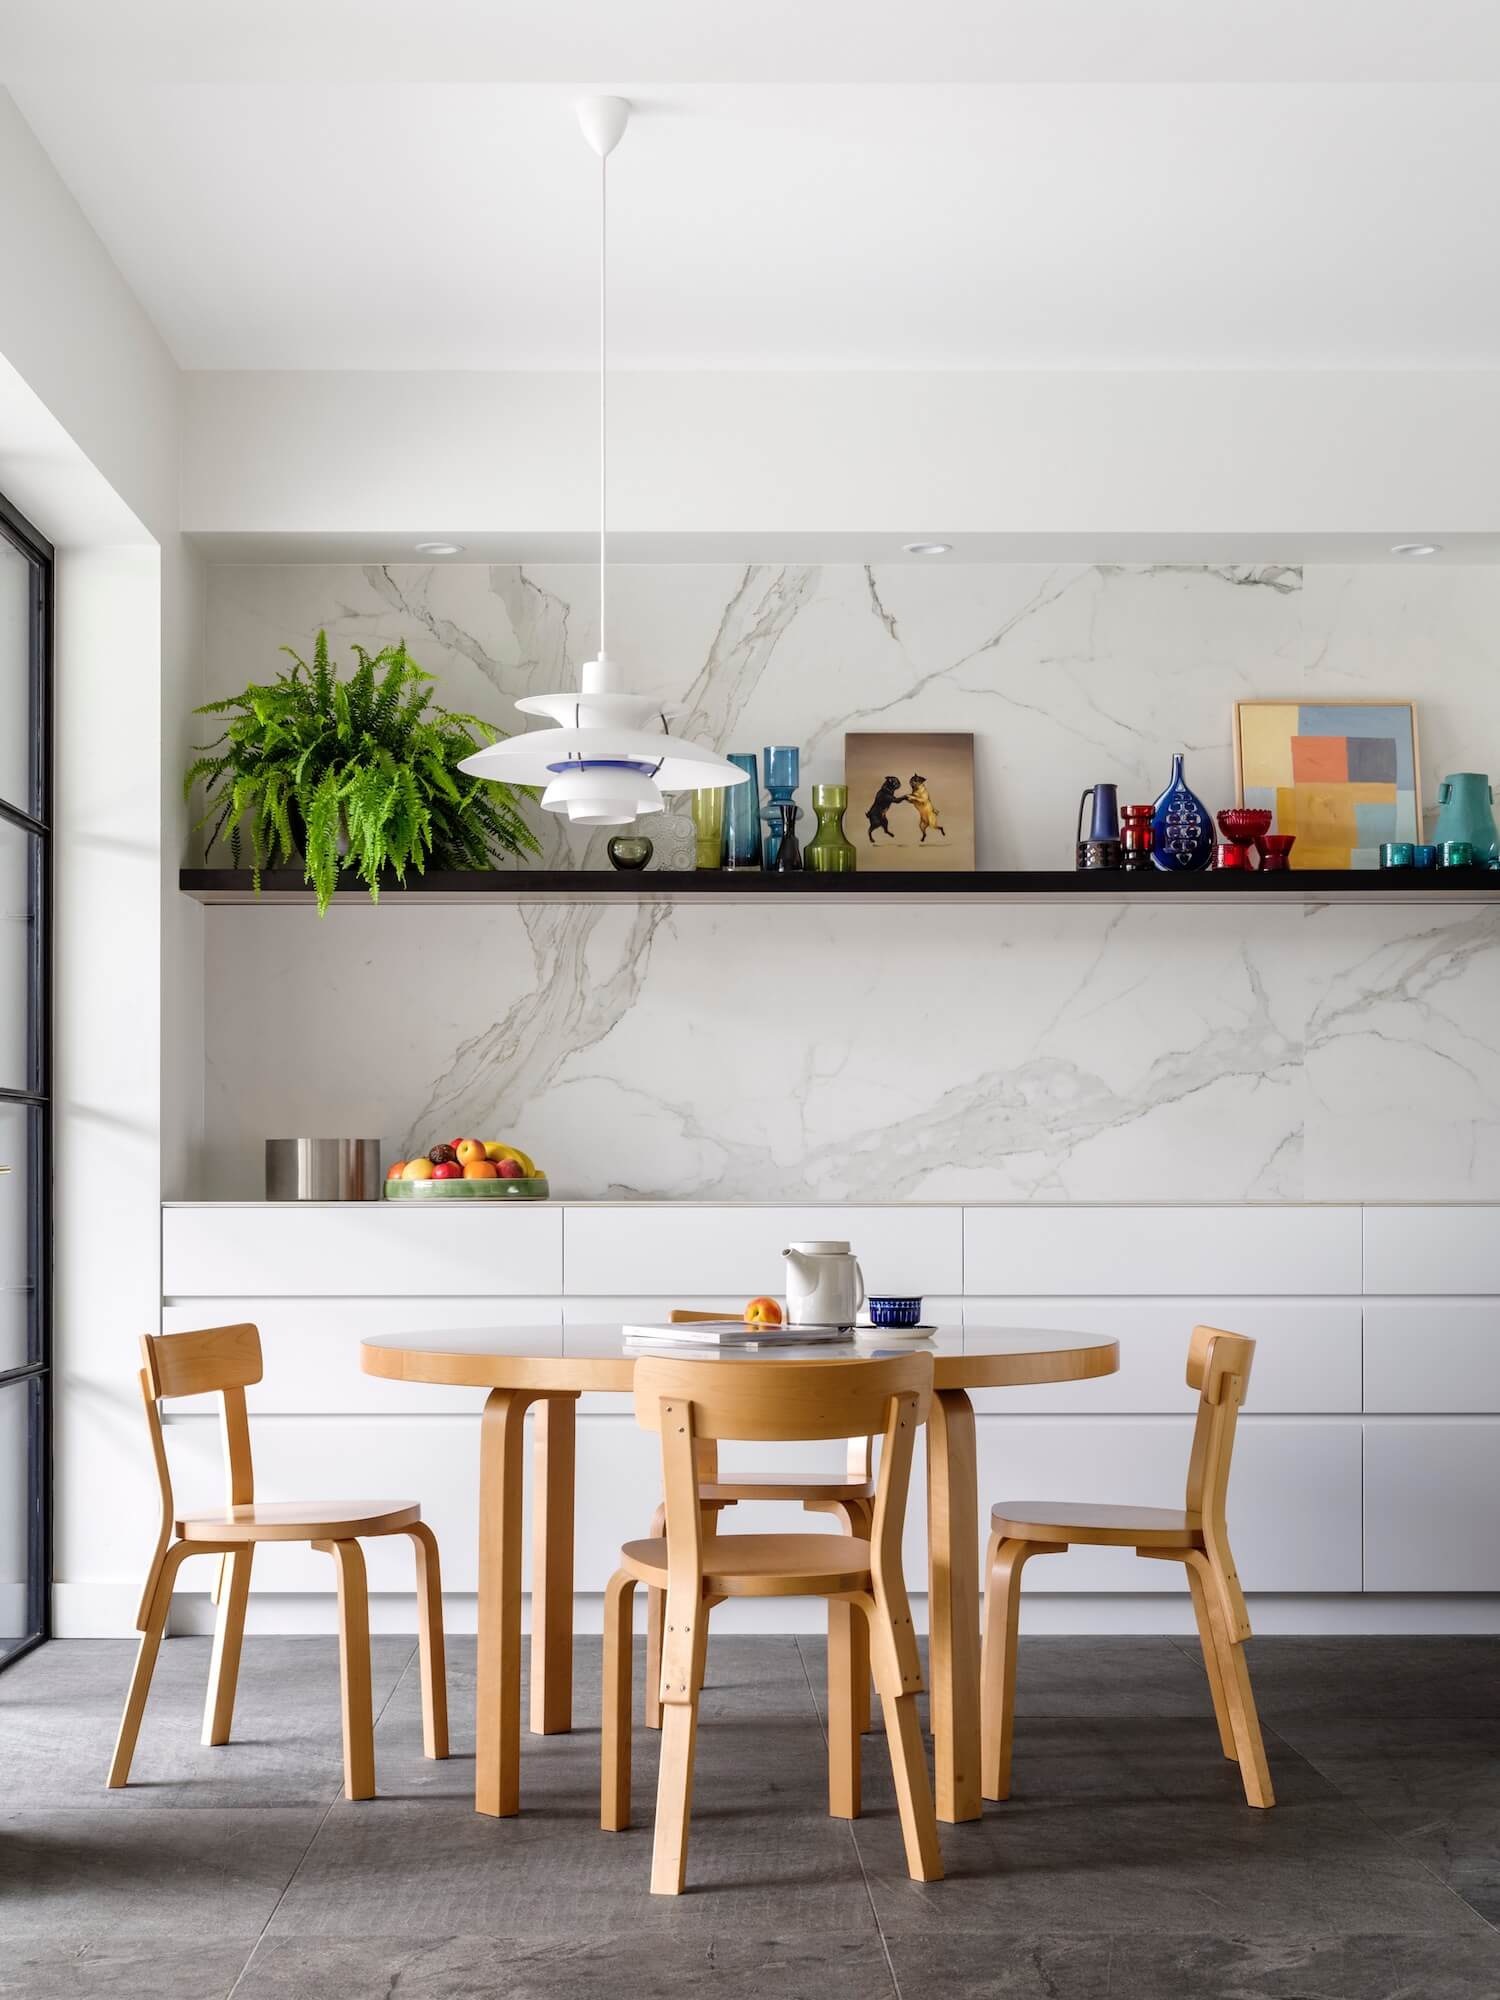 est living ana carin design edgecliff road kitchen